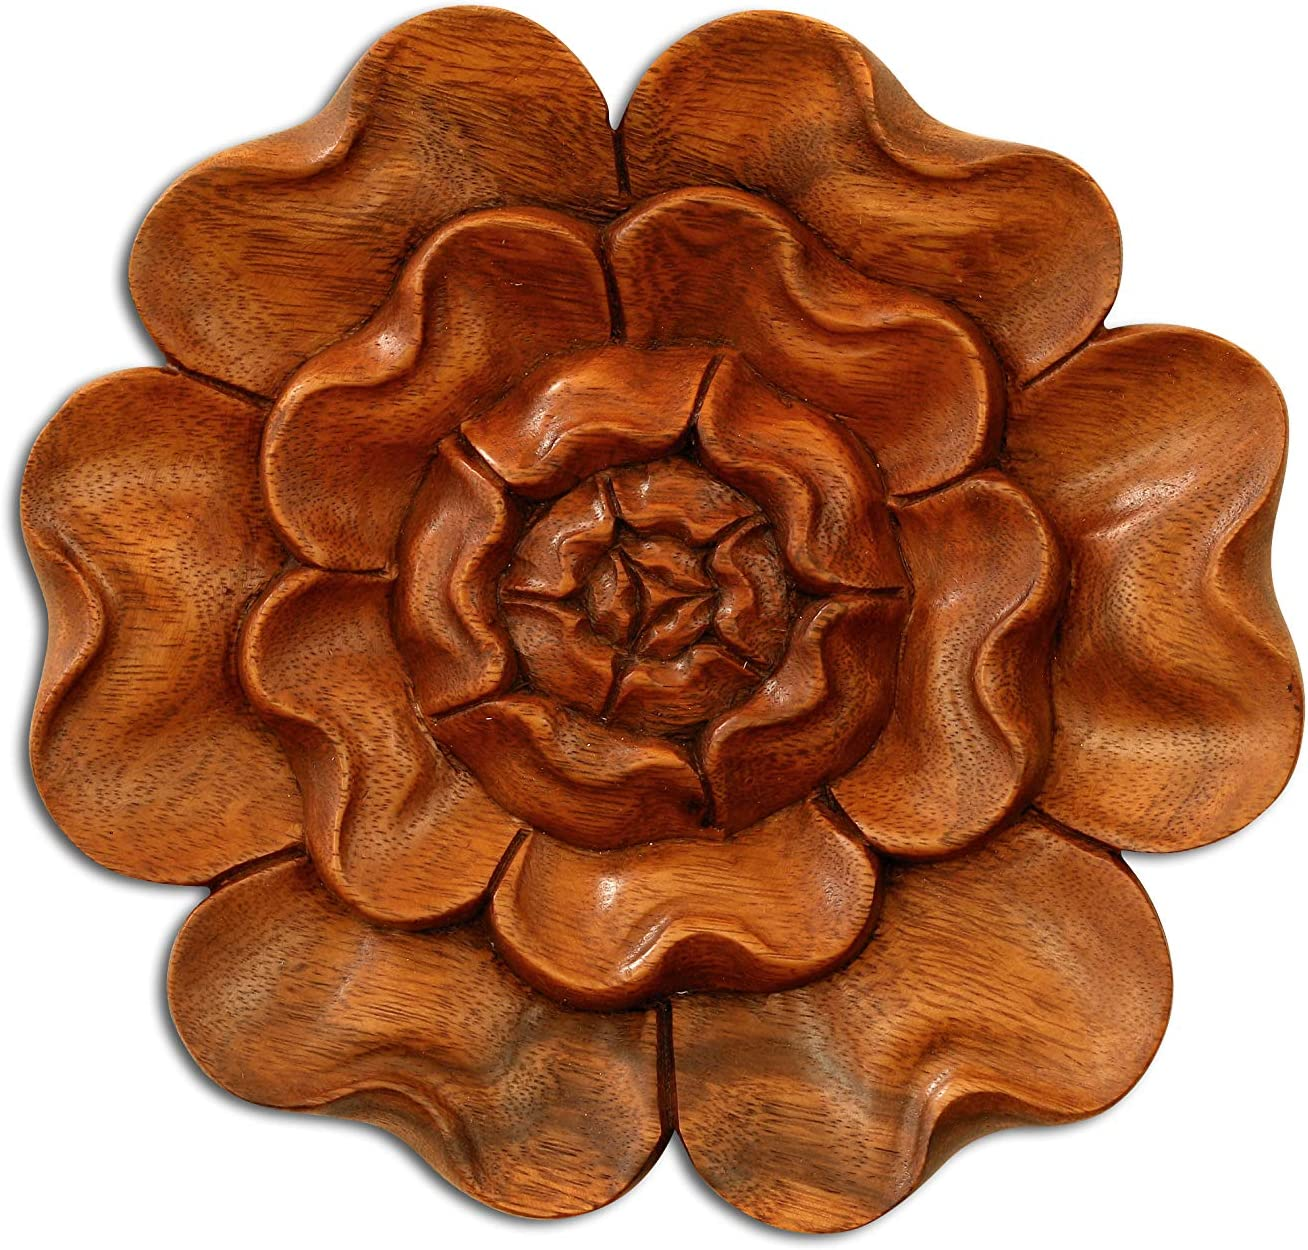 G6 COLLECTION Wooden Hand Carved Wall Art Relief Panel Handcrafted Wall Plaque Gift Decorative Home Decor Accent Handmade Wood Hang Decoration Rustic Hanging Artwork Floral (Lotus Flower)